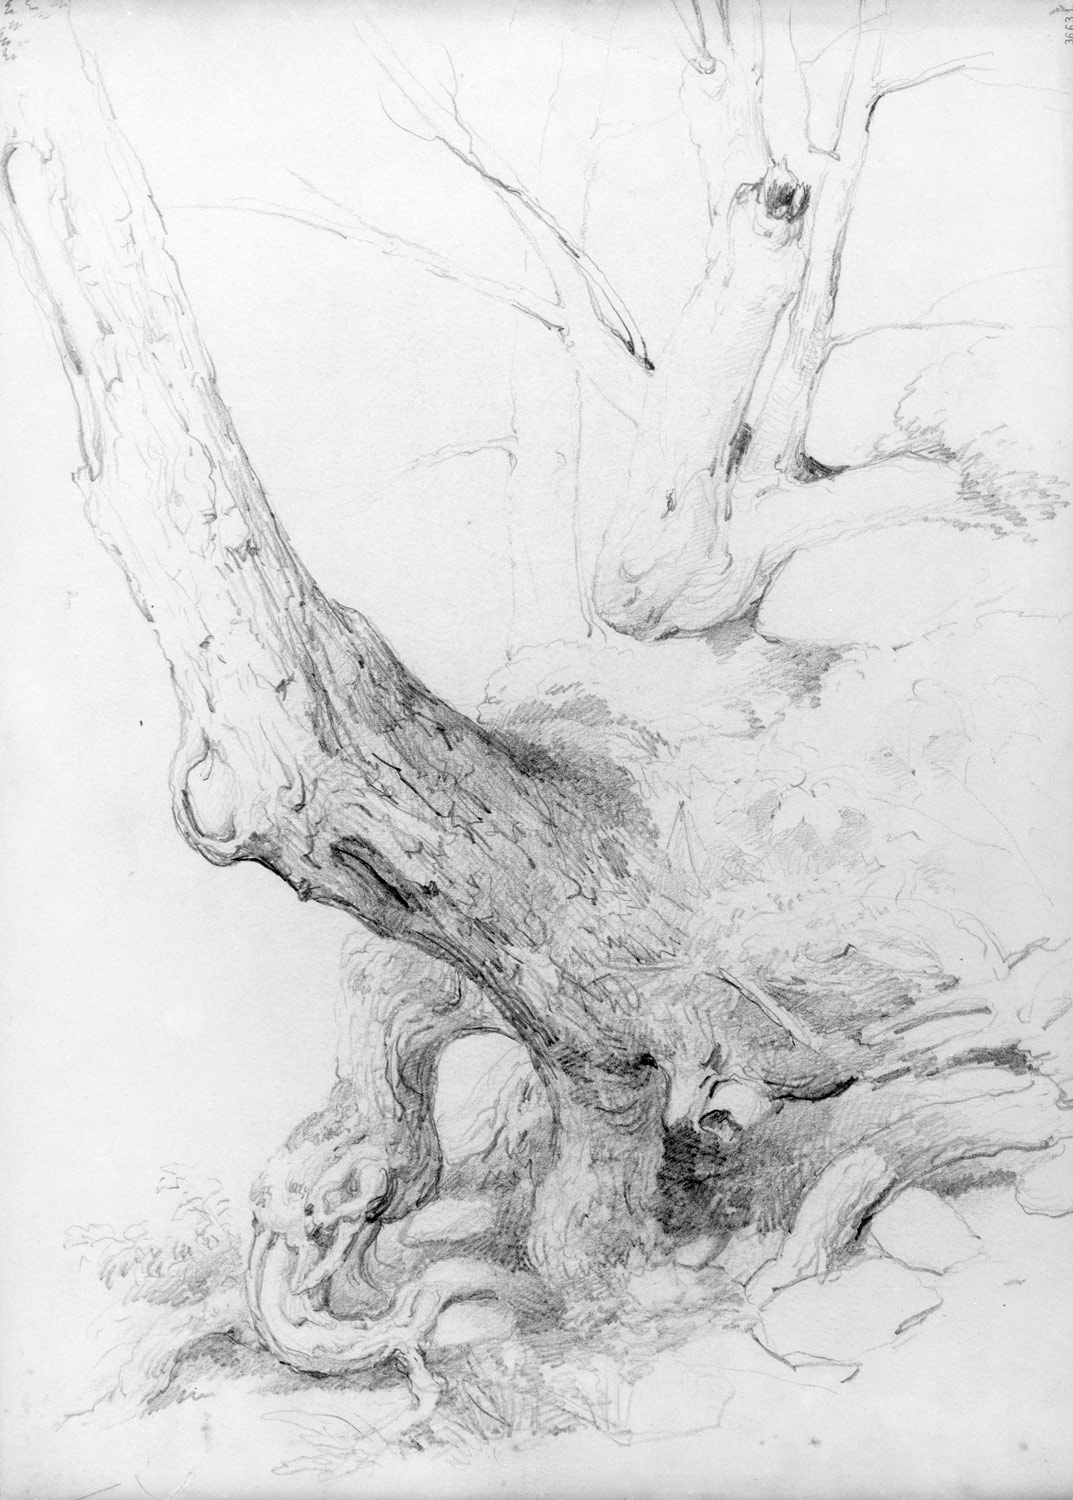 Sketch from nature